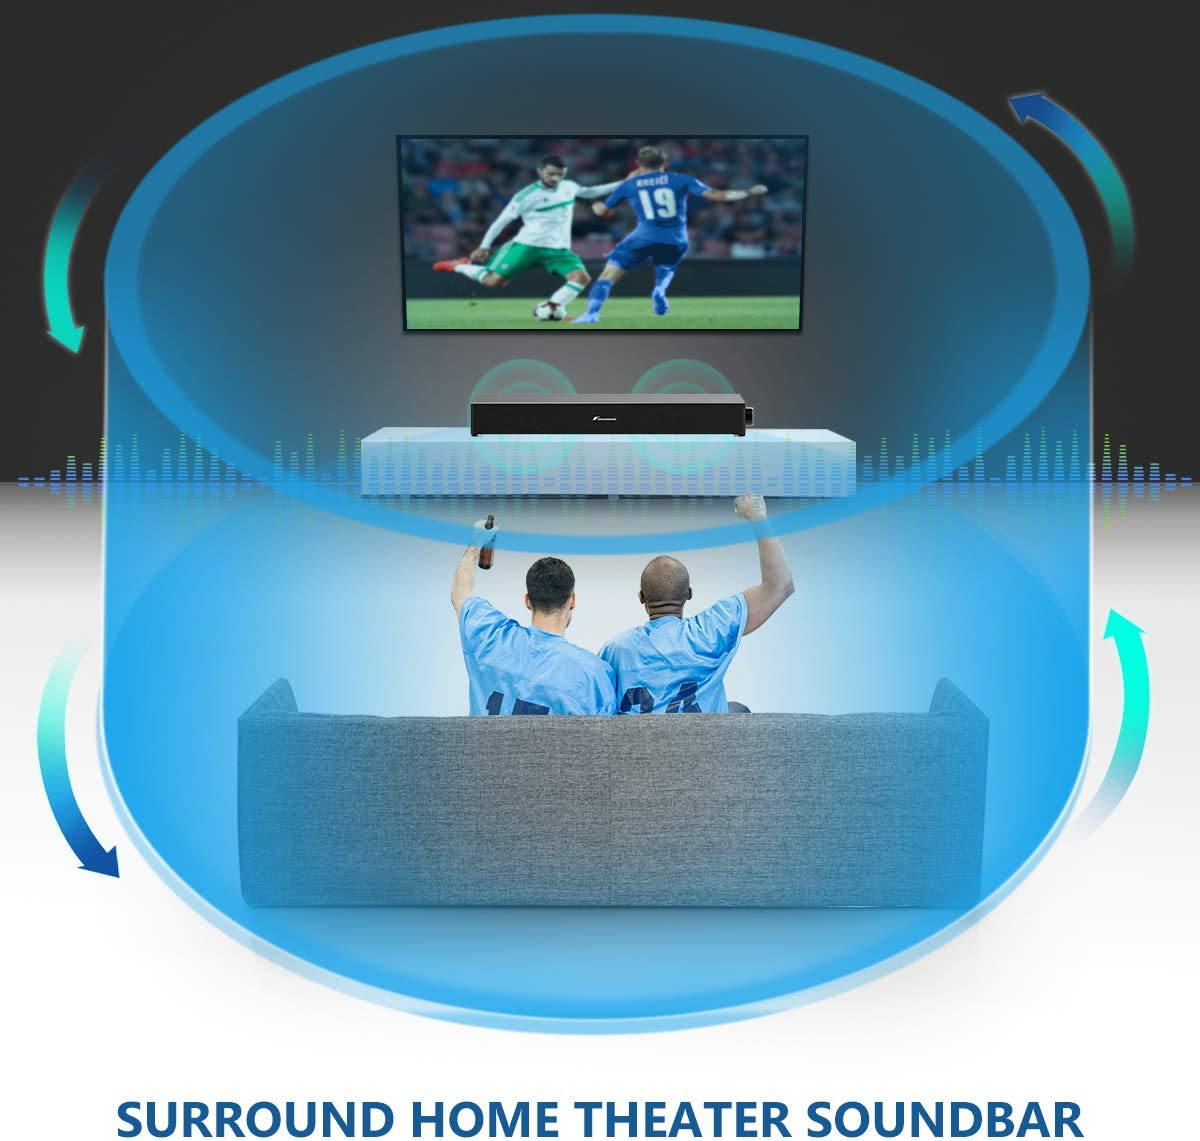 3D Surround Sound Bar for TV Portable Soundbar Home Theater Soundbar Wireless & Wired Bluetooth Sound Bars with Remote Control